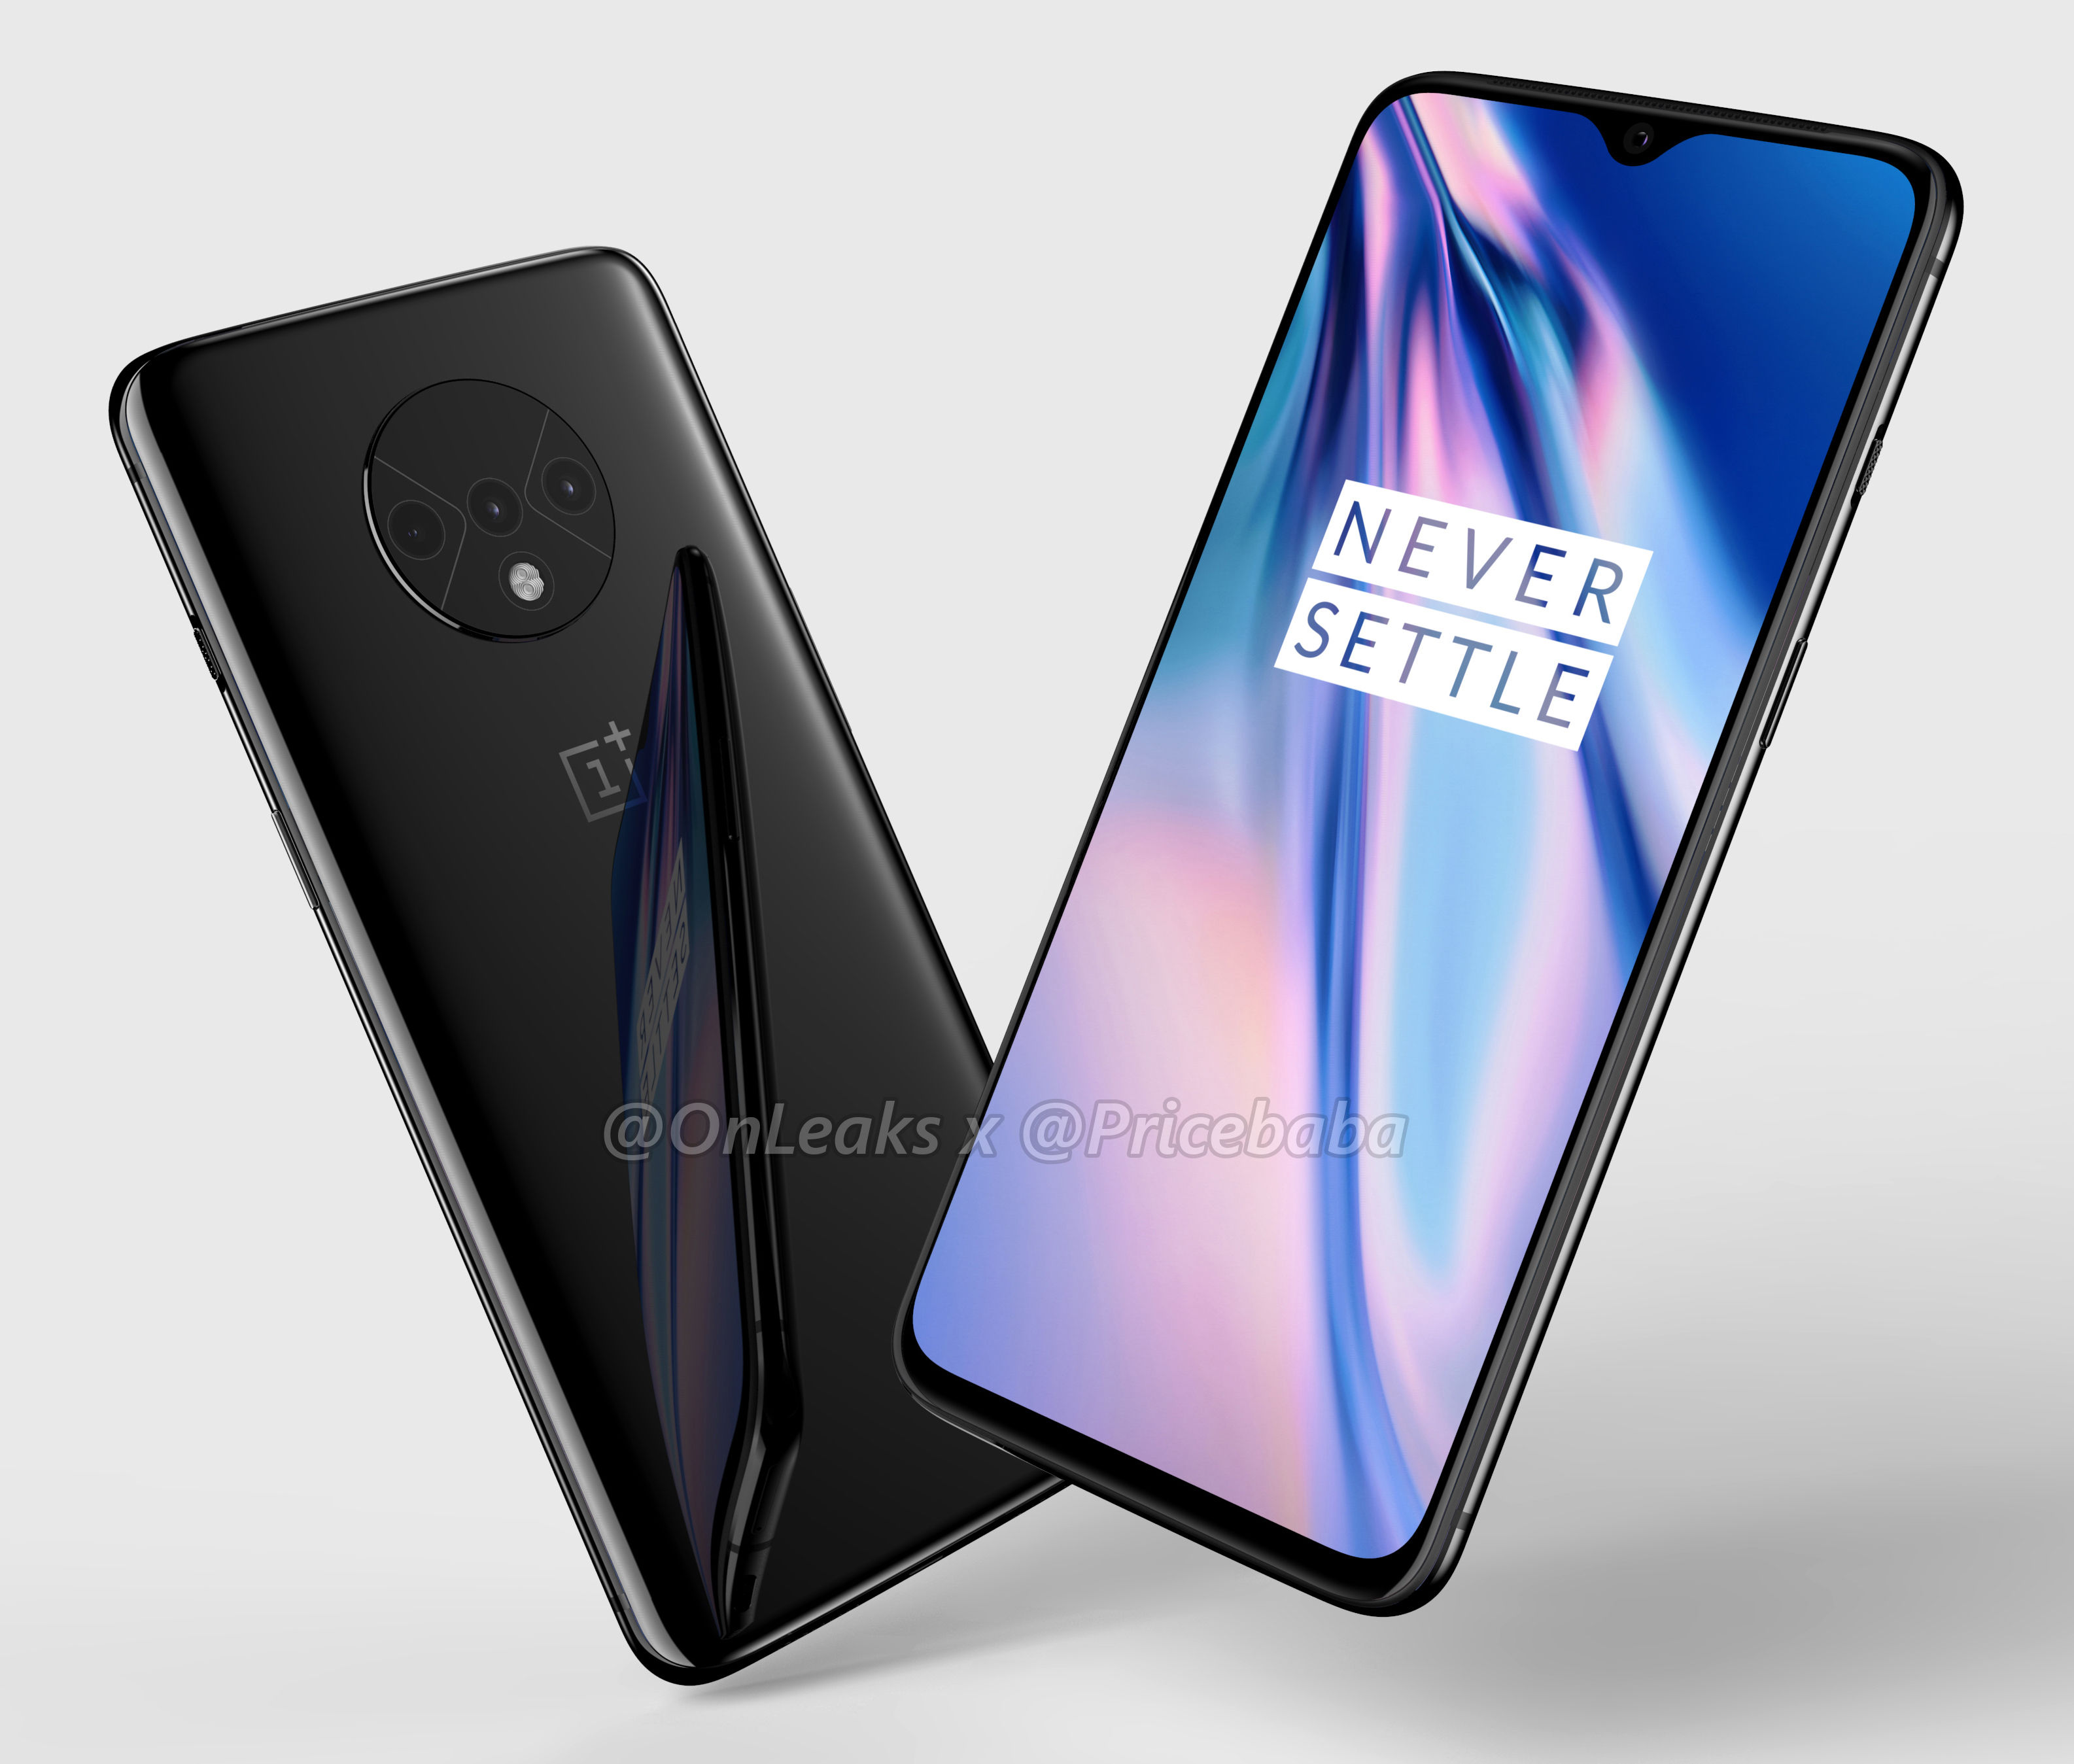 CAD renders reveal Oneplus 7T with circular camera module